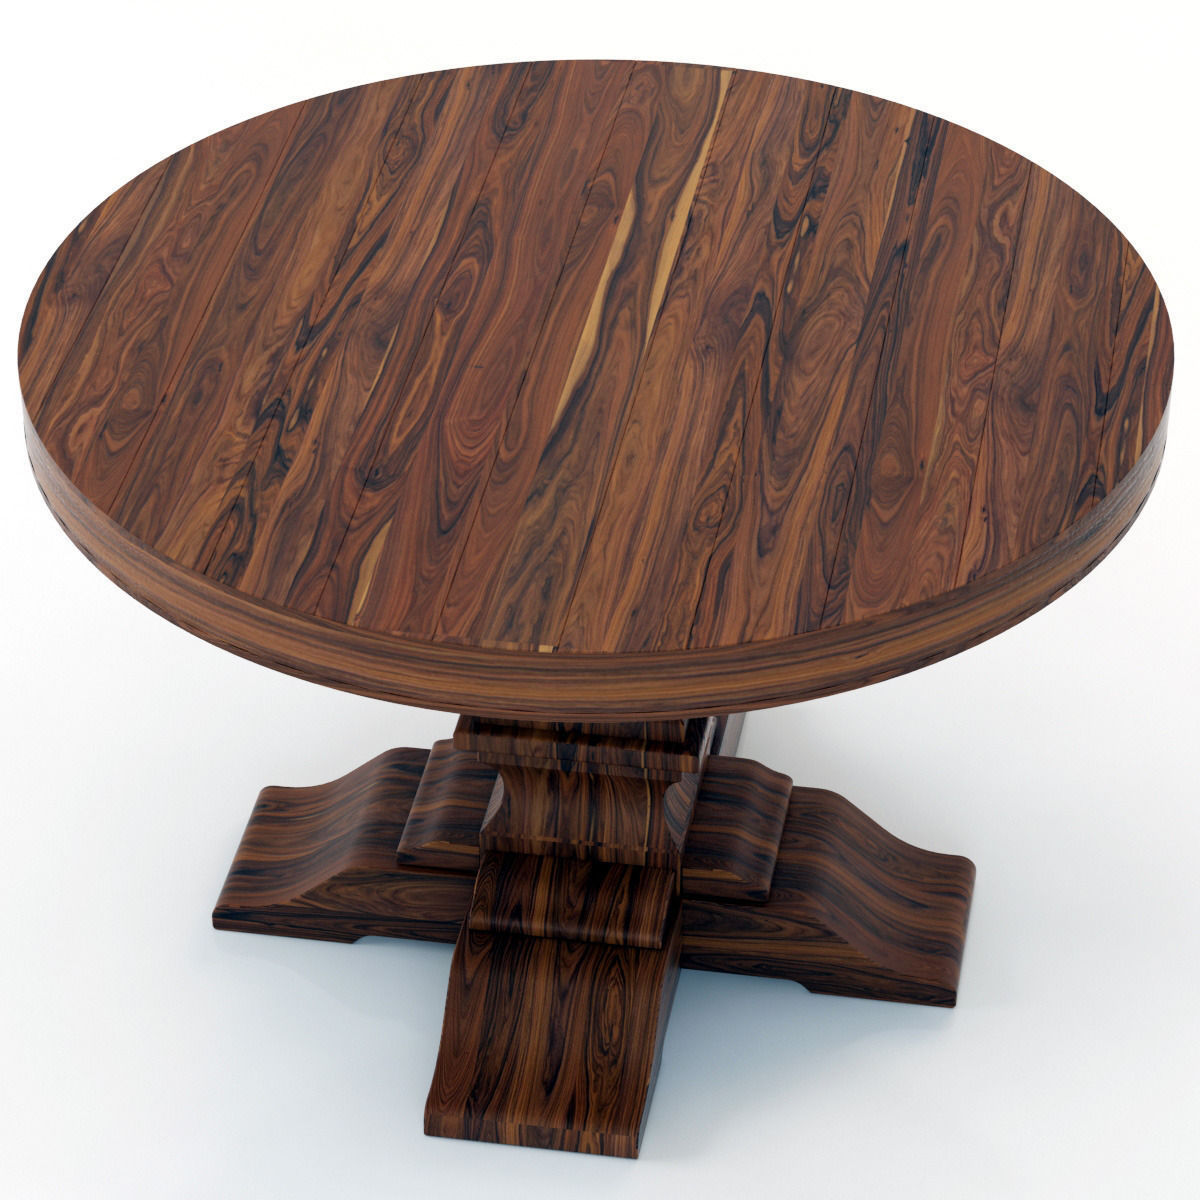 Restoration Hardware Kitchen Tables: Restoration Hardware Dumont Round Dining T... 3D Model